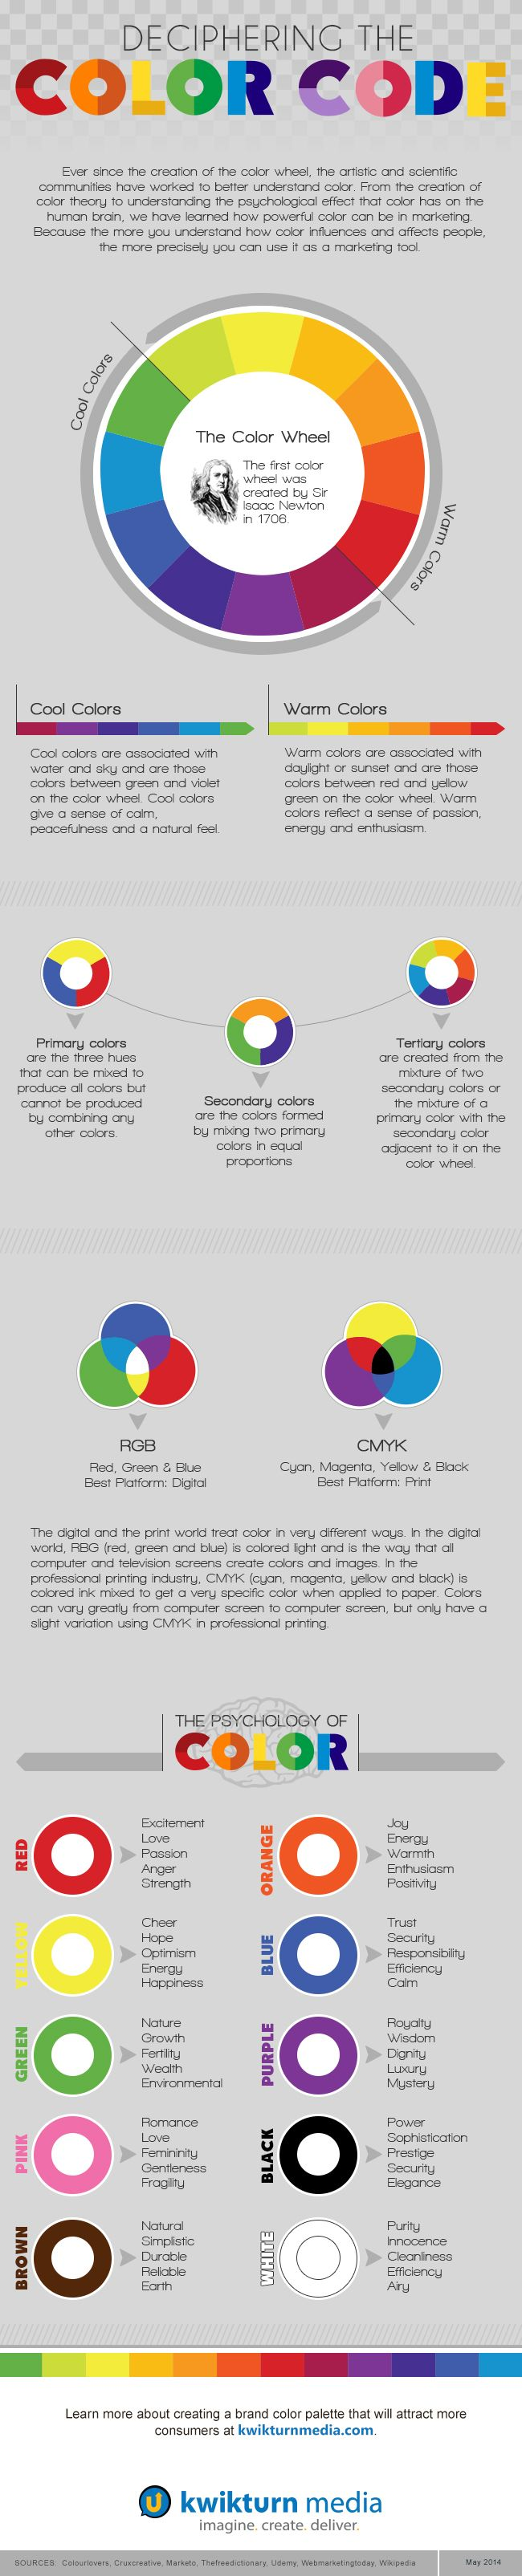 Cool colors web design - Another Inforgraphic About Color The Color Code Infographic